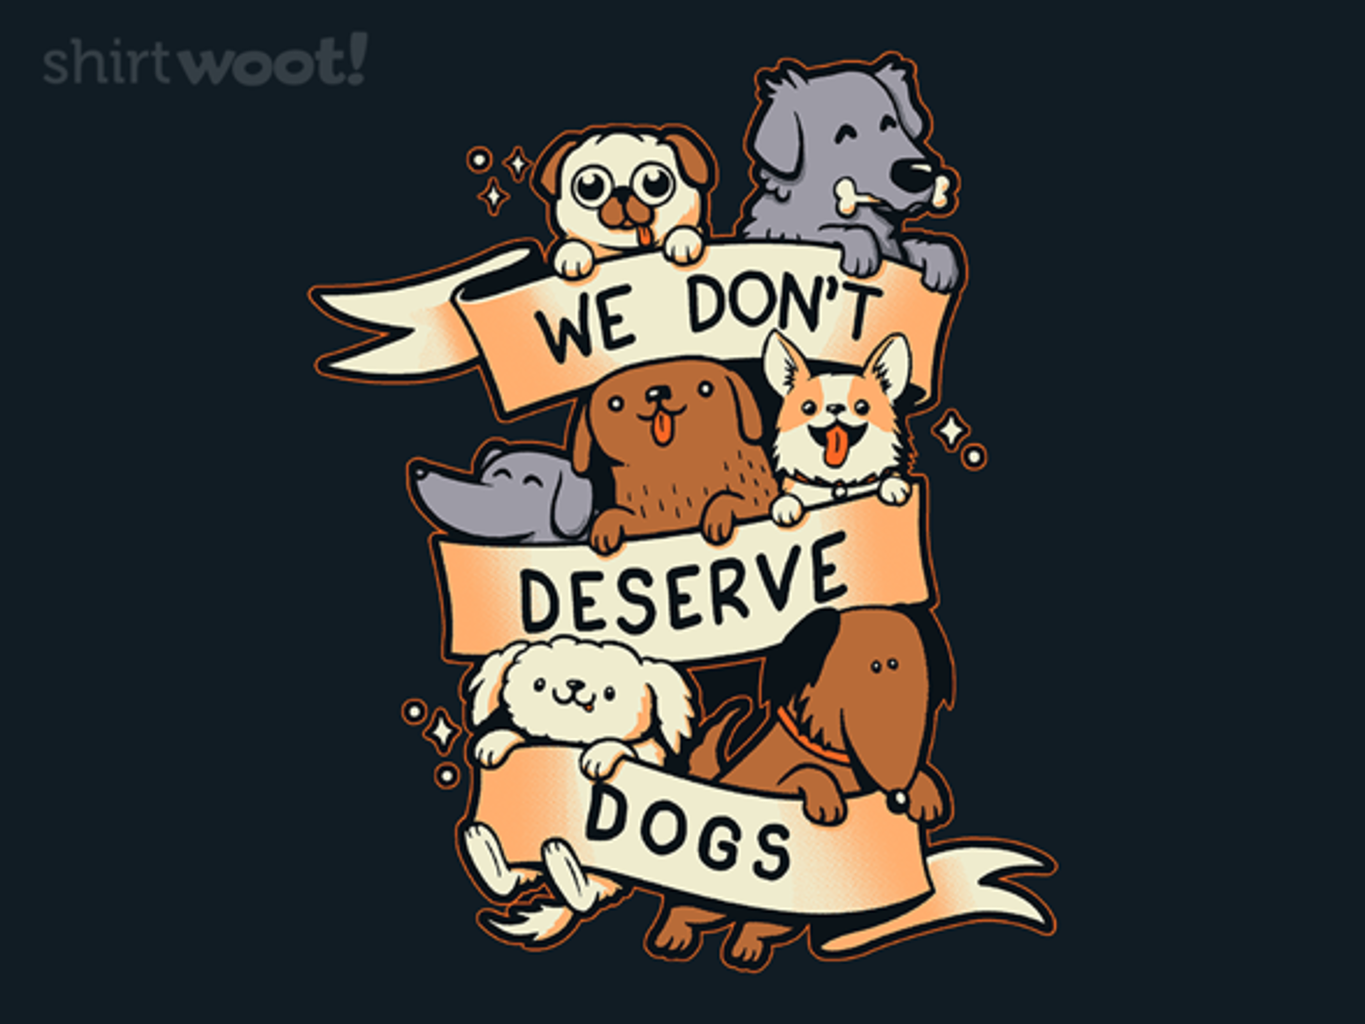 Woot!: We Don't Deserve Dogs